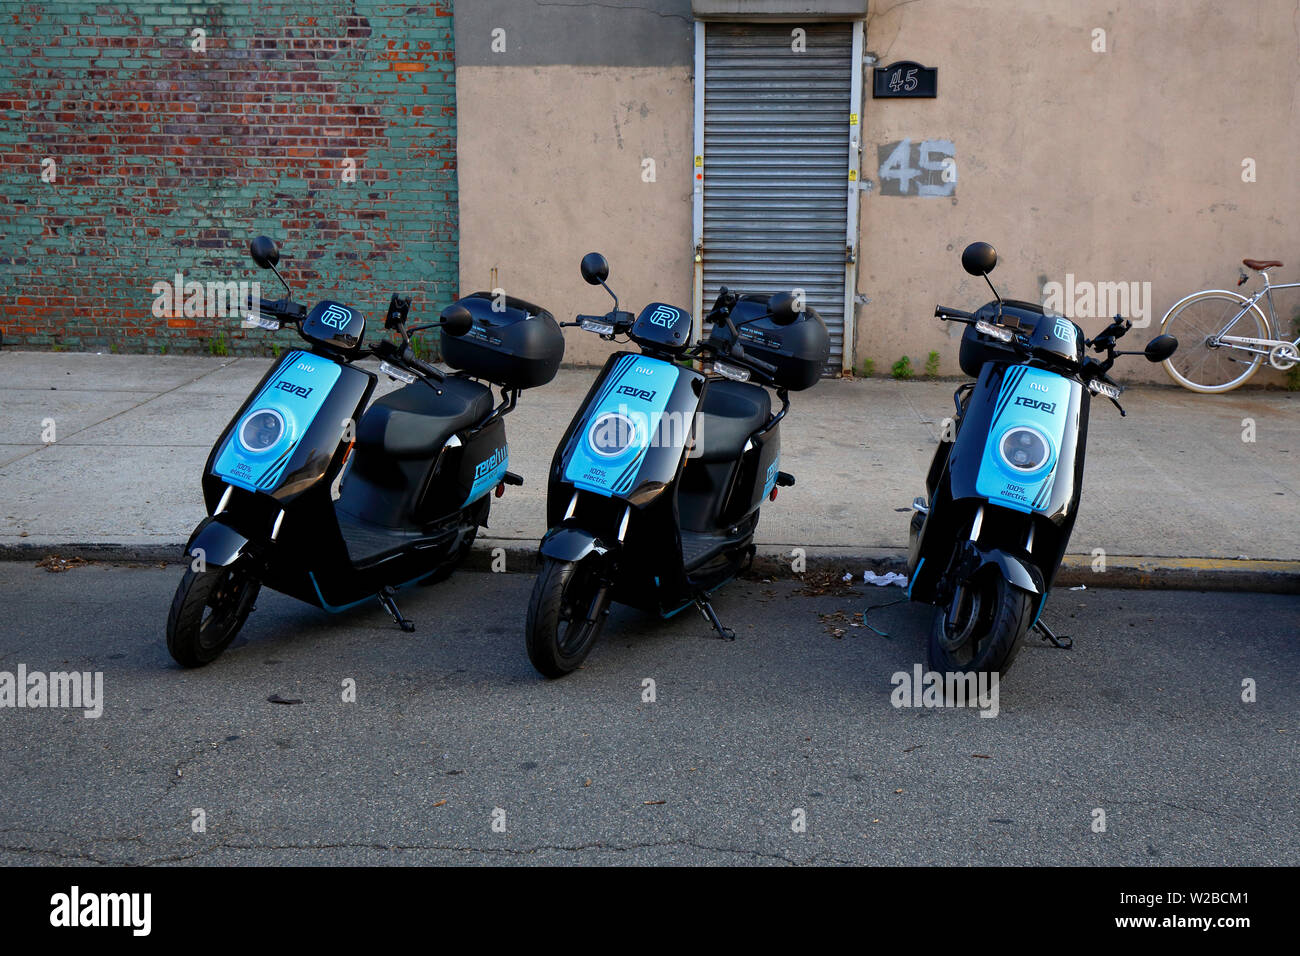 Revel dockless rental electric mopeds parked on a street